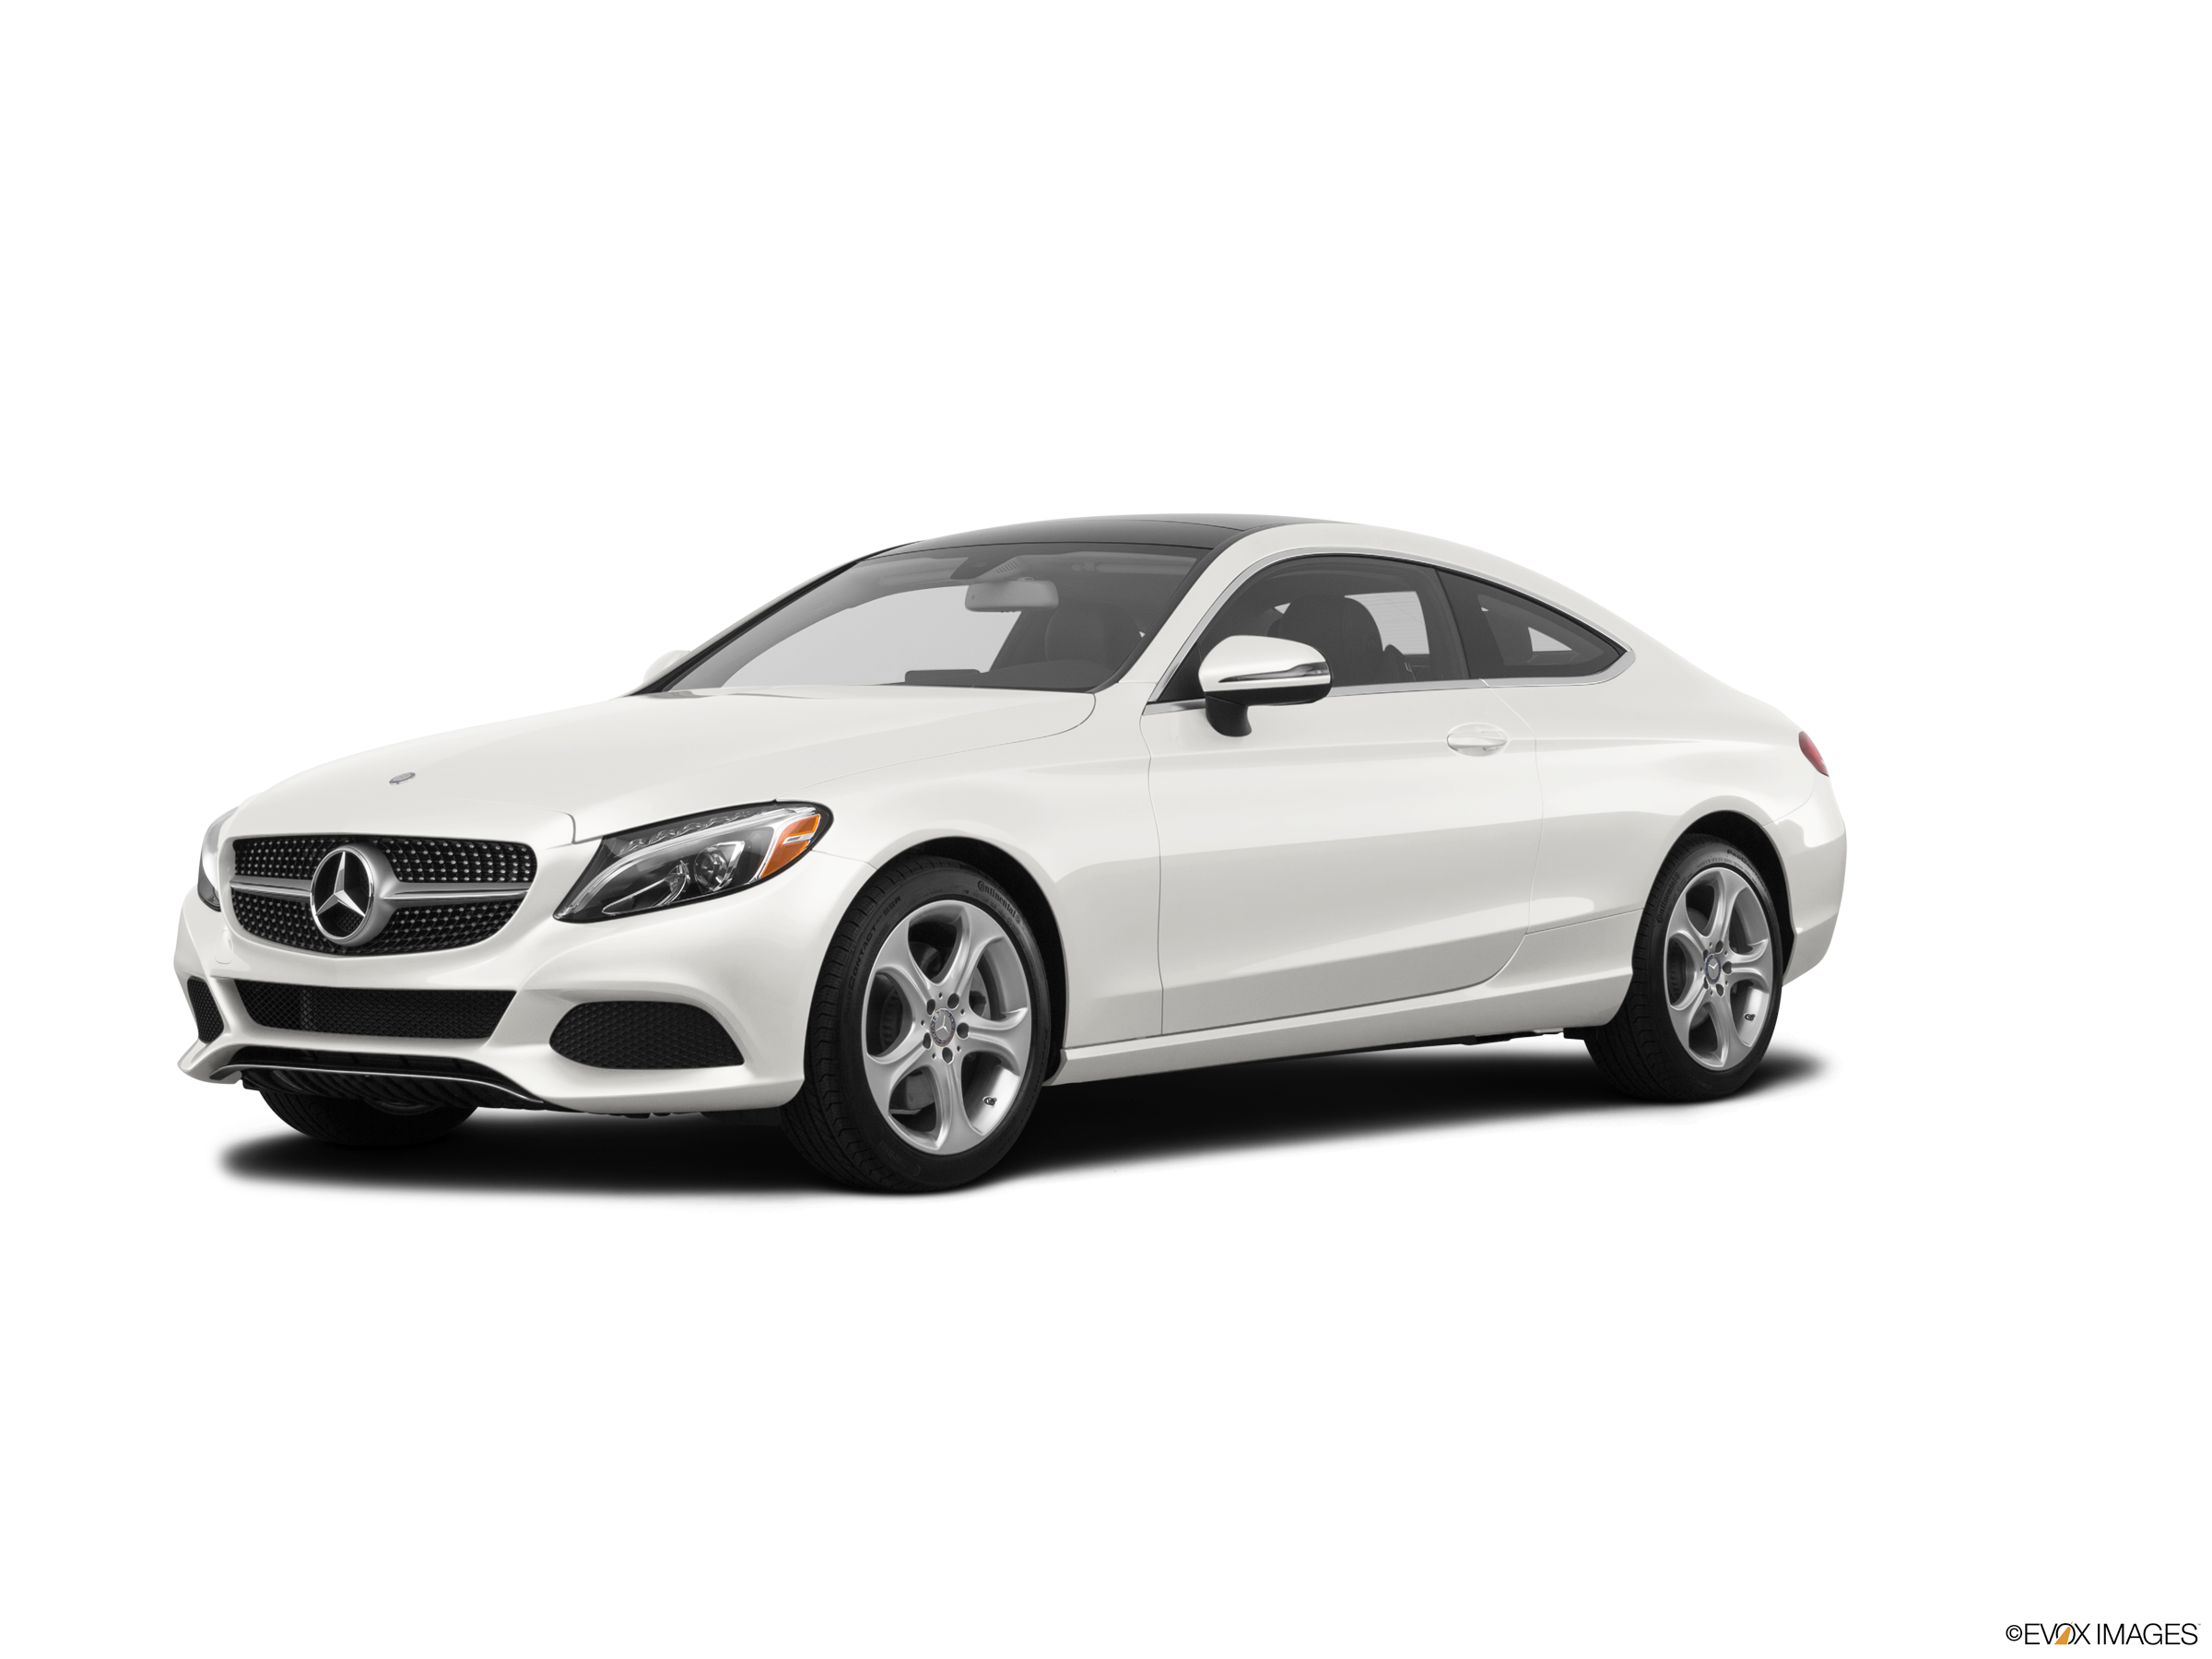 Top Expert Rated Coupes of 2017 - 2017 Mercedes-Benz C-Class